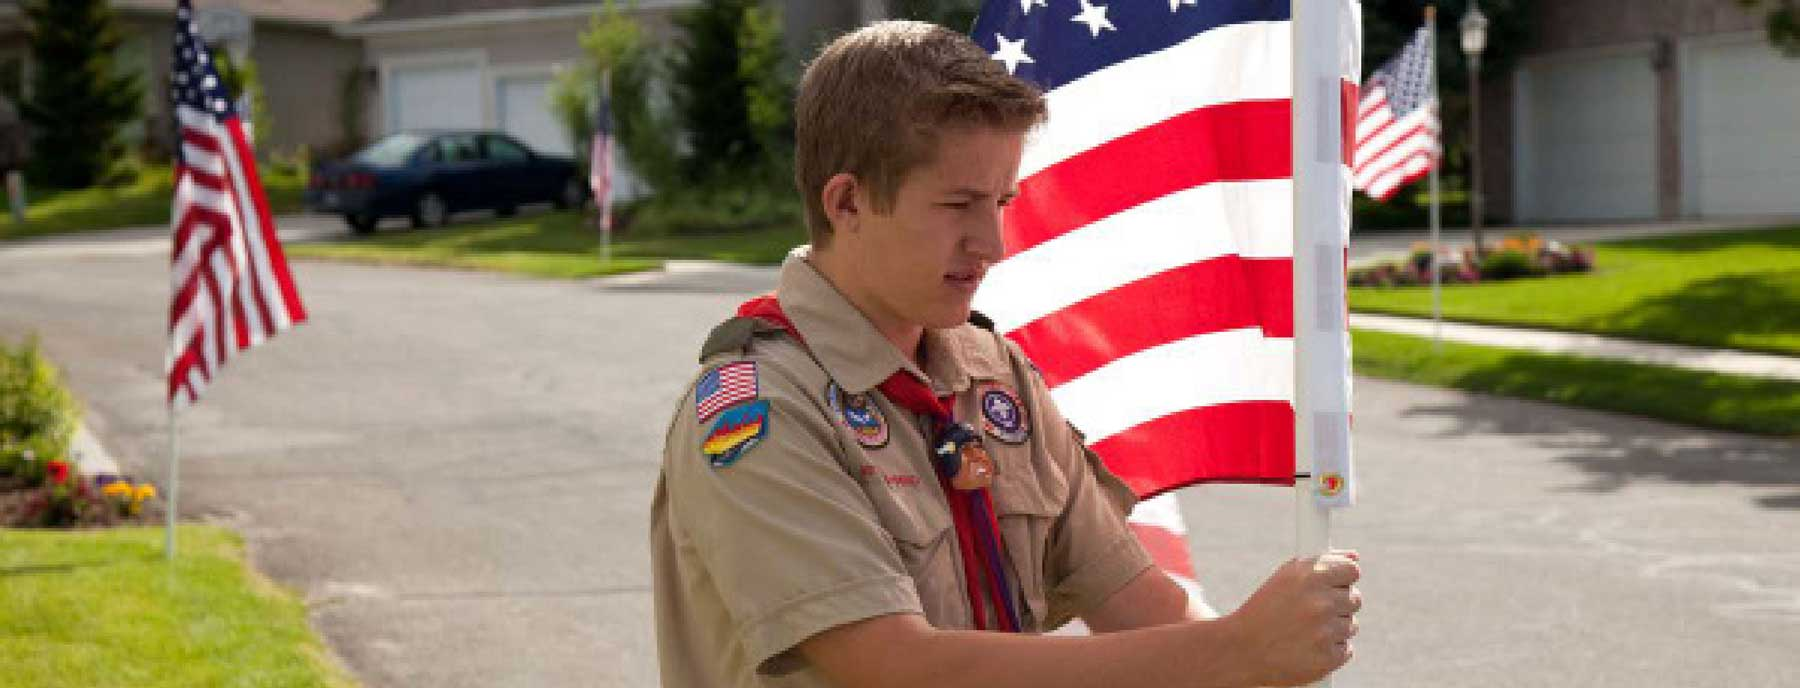 US Fundraising Flag Fundraiser Kits for Scouts and Donations